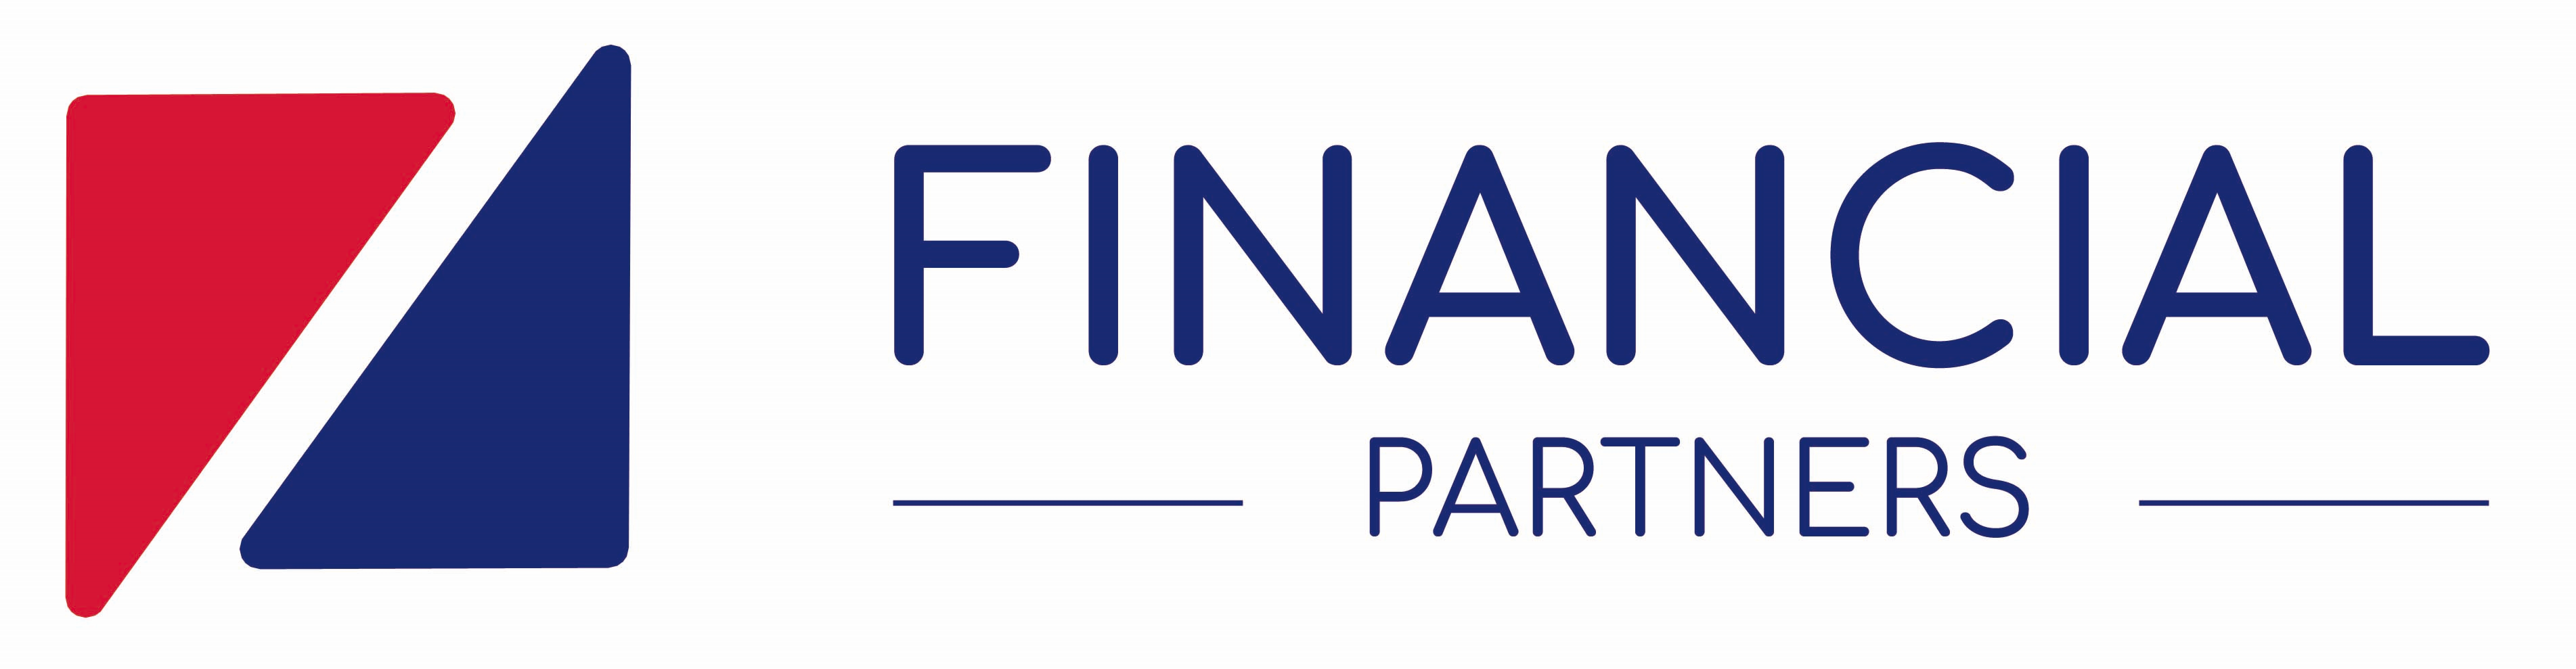 Financial Partners GmbH